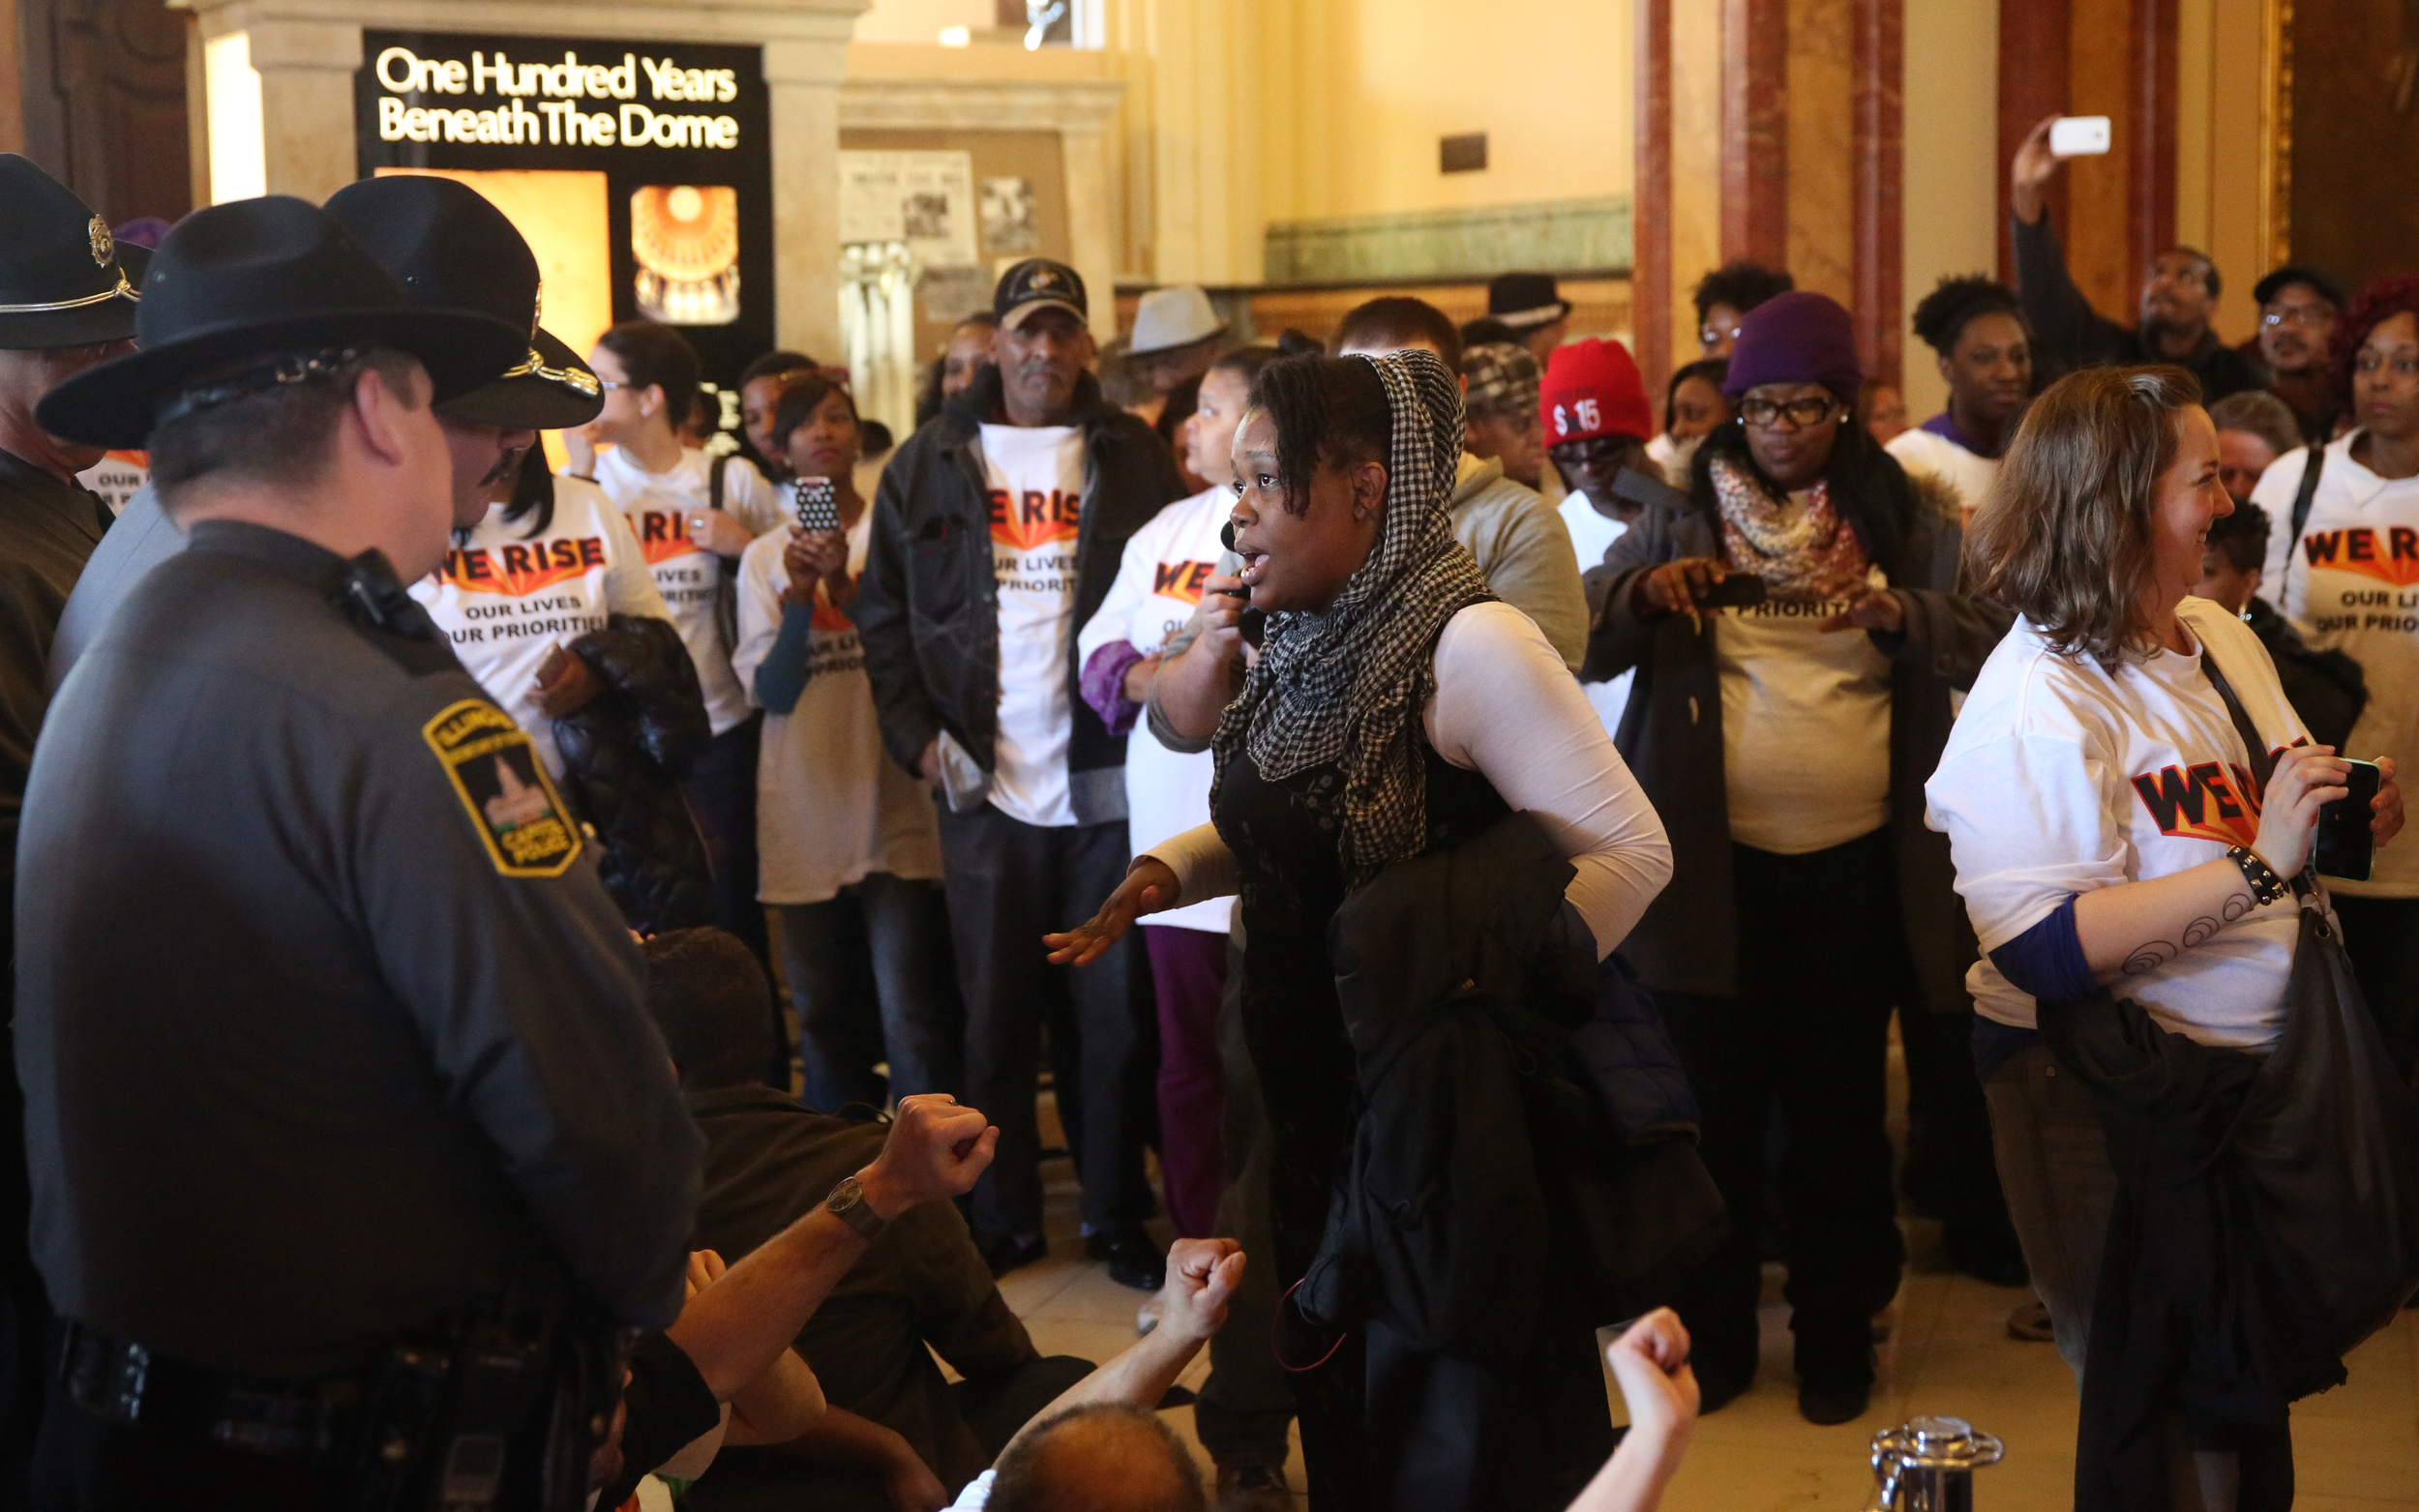 """A rally organizer speaks with Secretary of State police officers while protesters sit in front of them outside the Governor's office during an act of civil disobedience inside the State Capitol building during the rally on Wed. March 11, 2015. As part of """"We Rise"""", a national day of action targeting state budget cuts, several thousand people from faith, community and labor organizations including adults, children and clergy affected by Gov. Bruce Rauner's proposed cuts gathered in Springfield to protest. The event began with a rally inside the Capitol building followed by a march to the governor's mansion where a mock """"funeral"""" for the """"99%"""" took place. David Spencer/The State Journal-Register"""